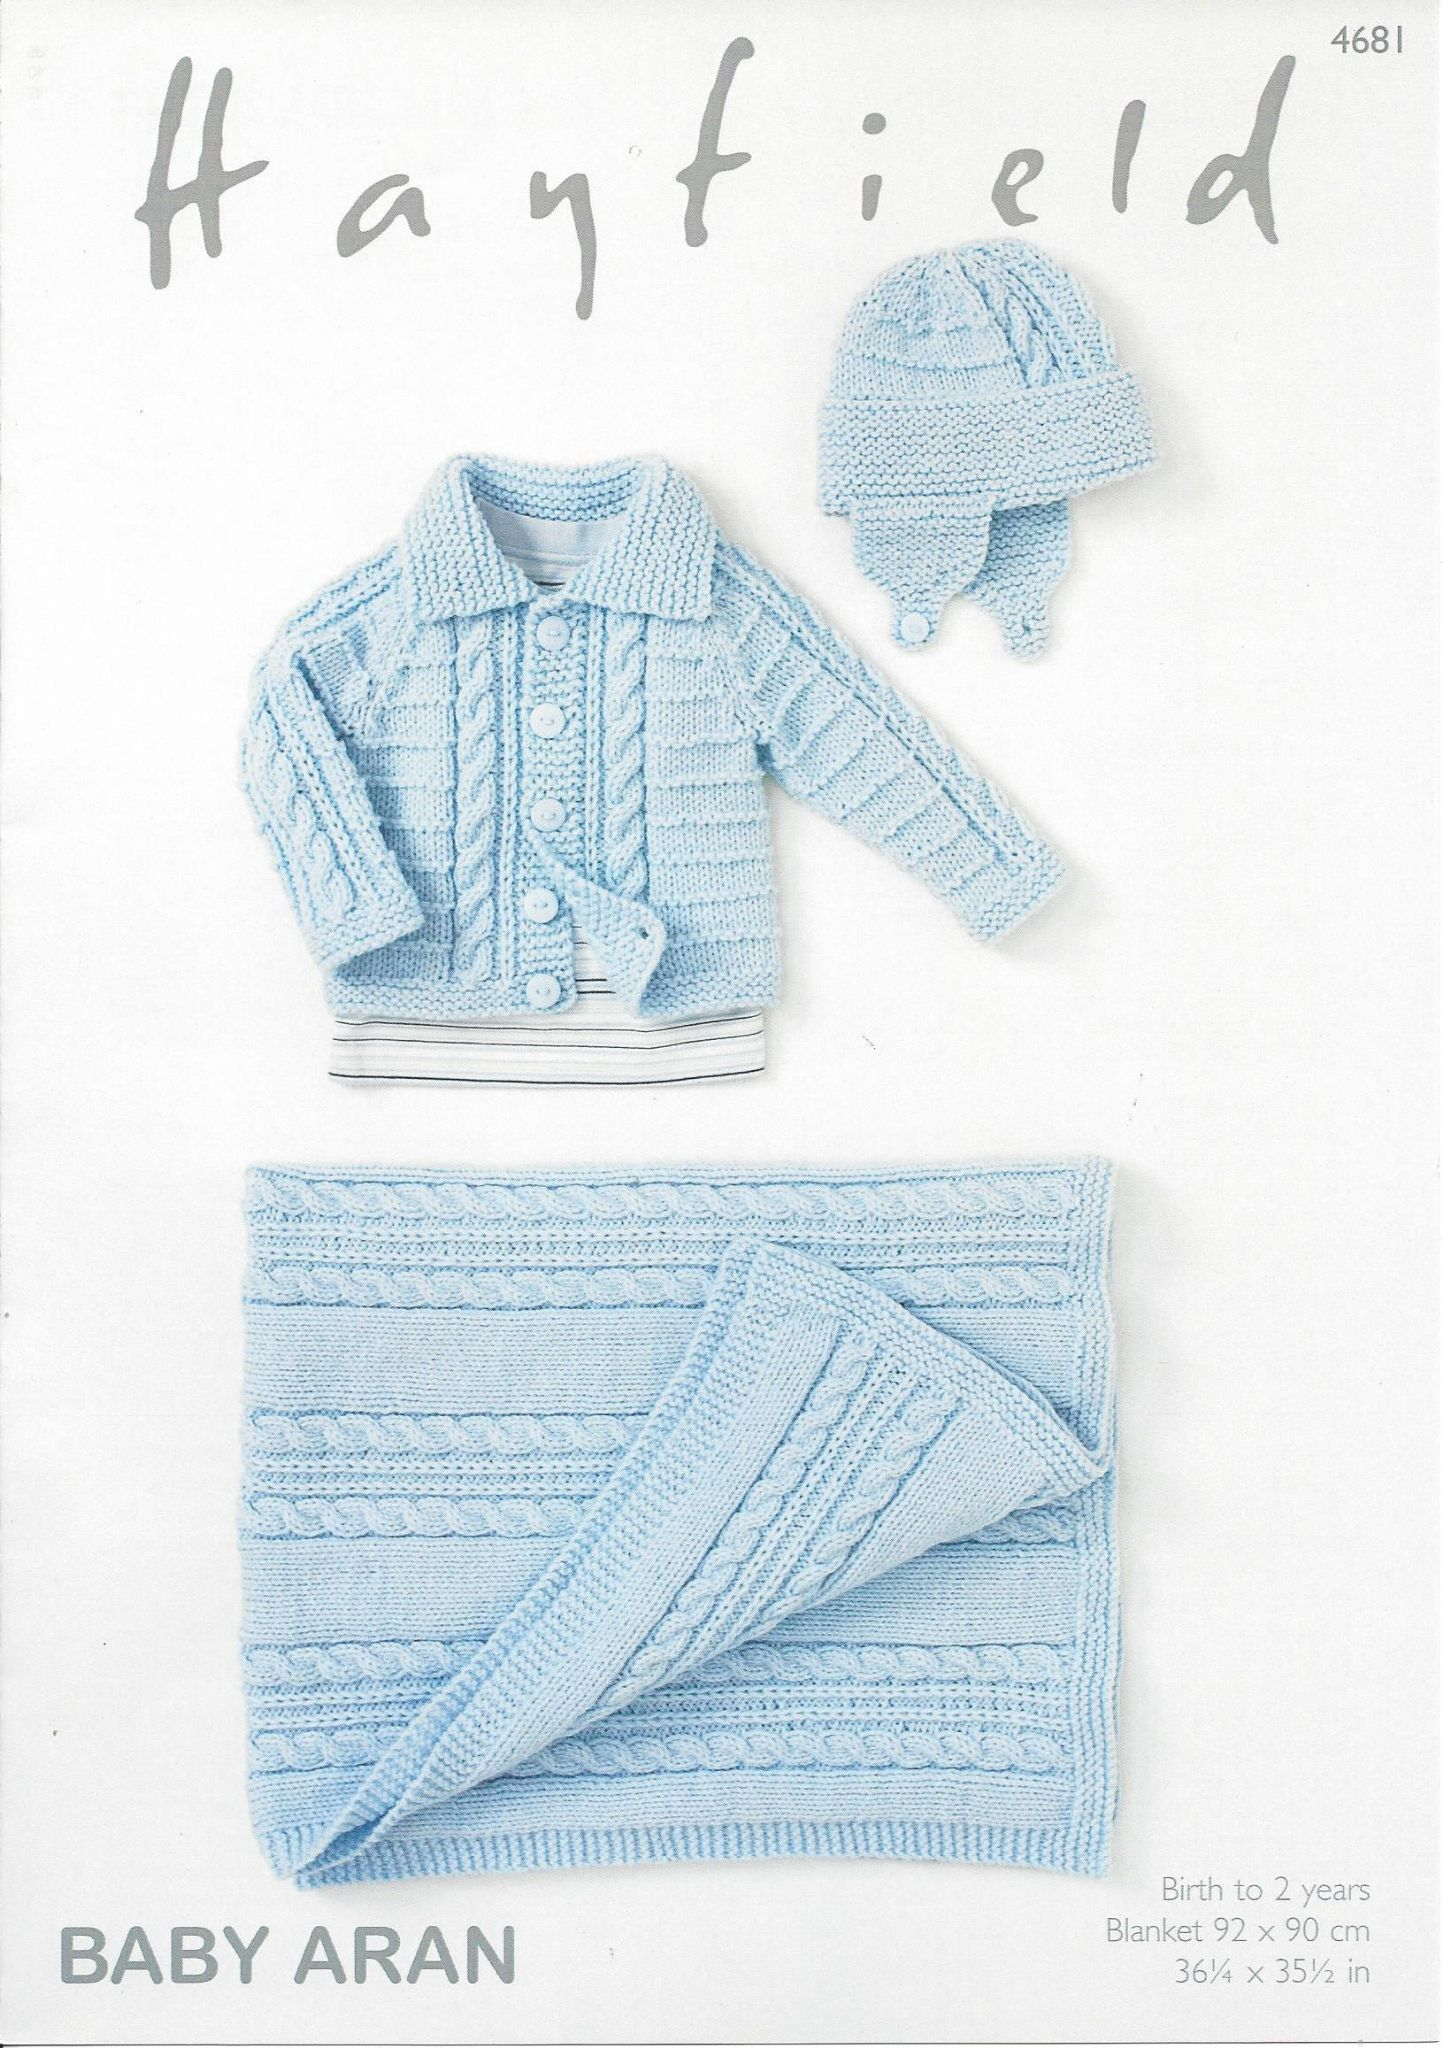 Hayfield Aran Knitting Pattern Books : Hayfield Baby Aran - 4681 Jacket Helmet & Blanket Knitting ...